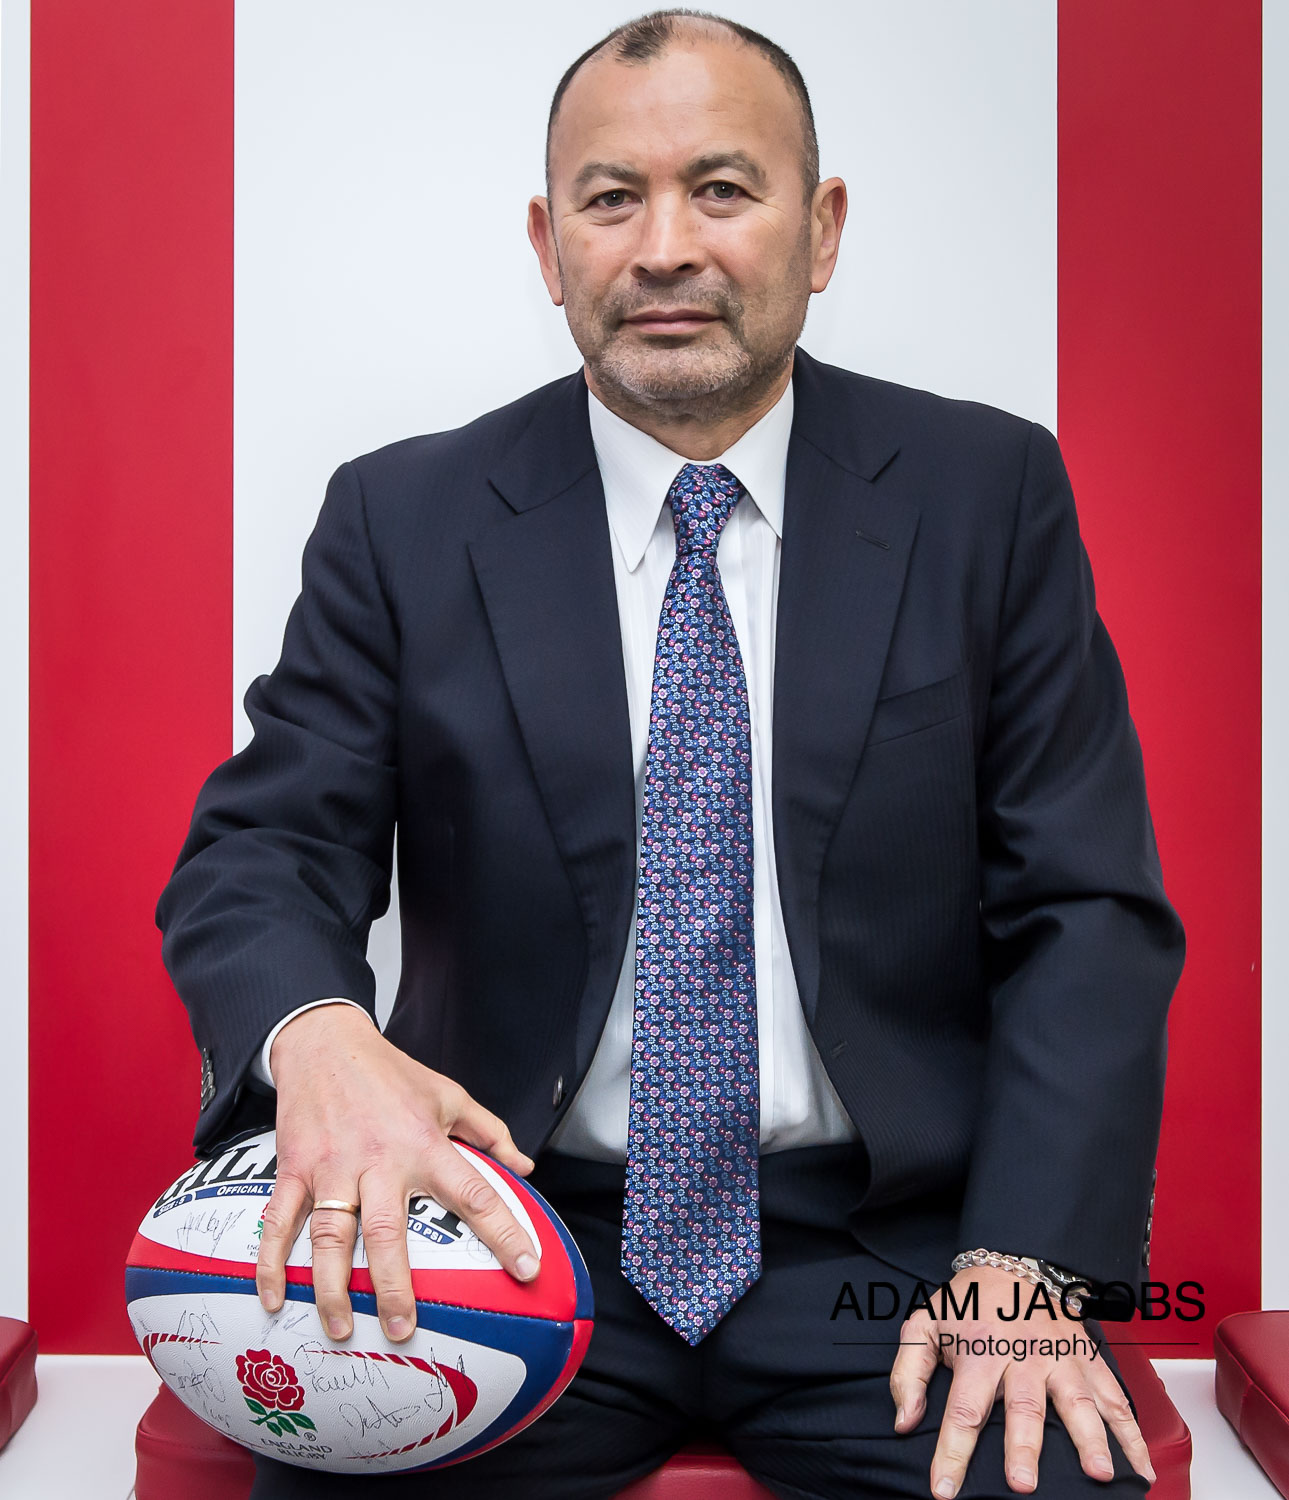 Eddie Jones England Rugby Coach_Adam Jacobs Photography_Sports Portrait